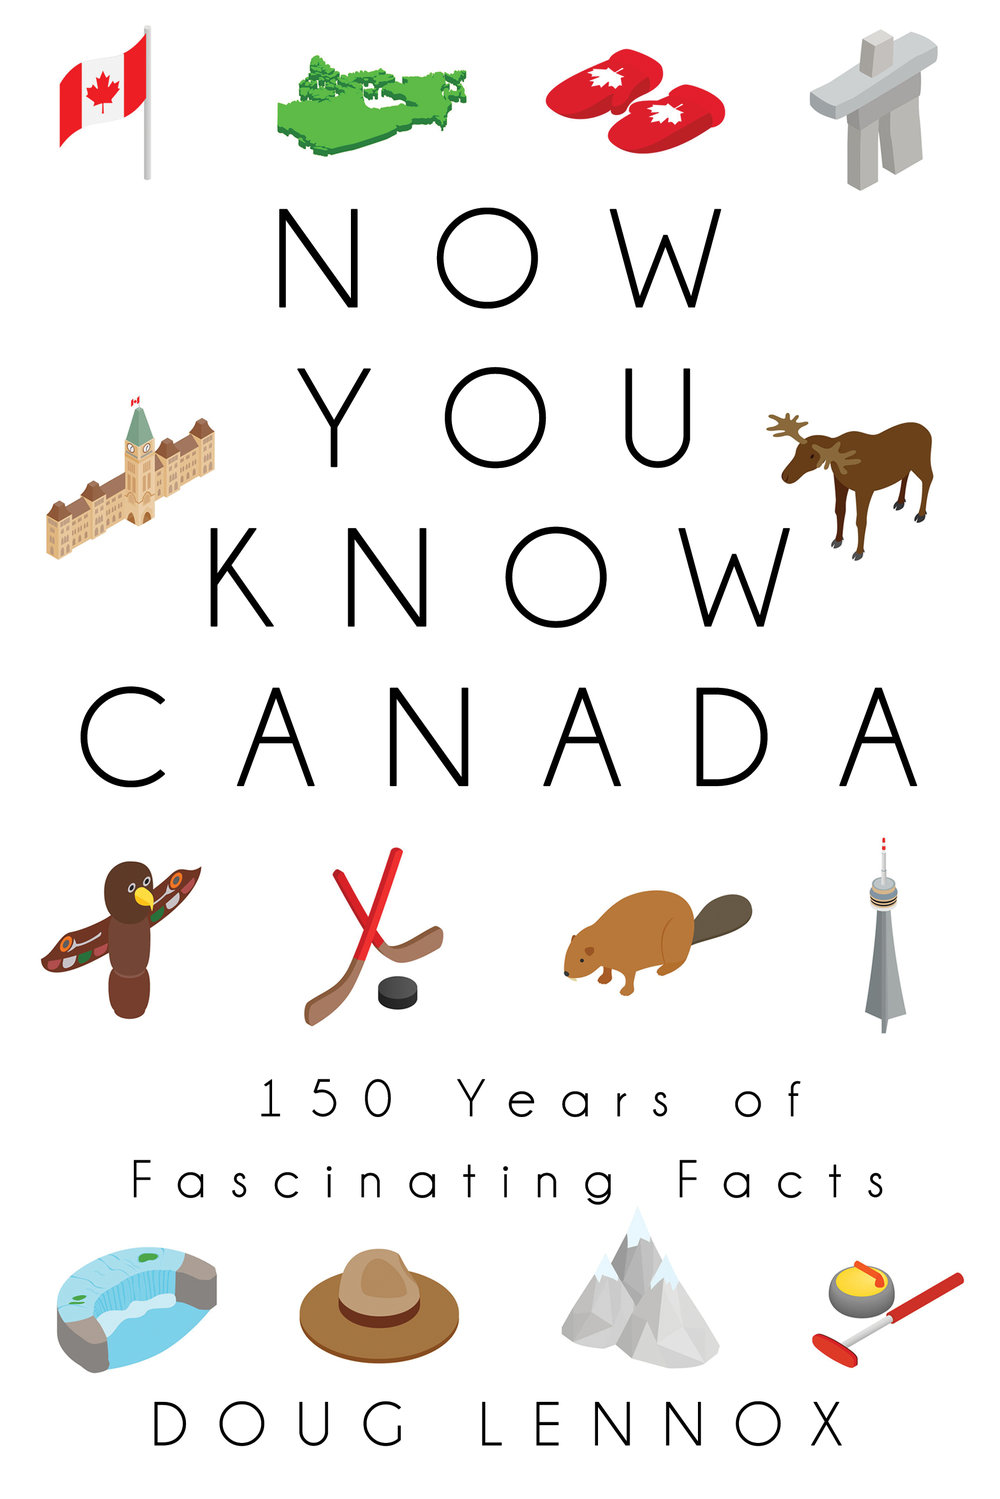 Now You Know Canada by Doug Lennox